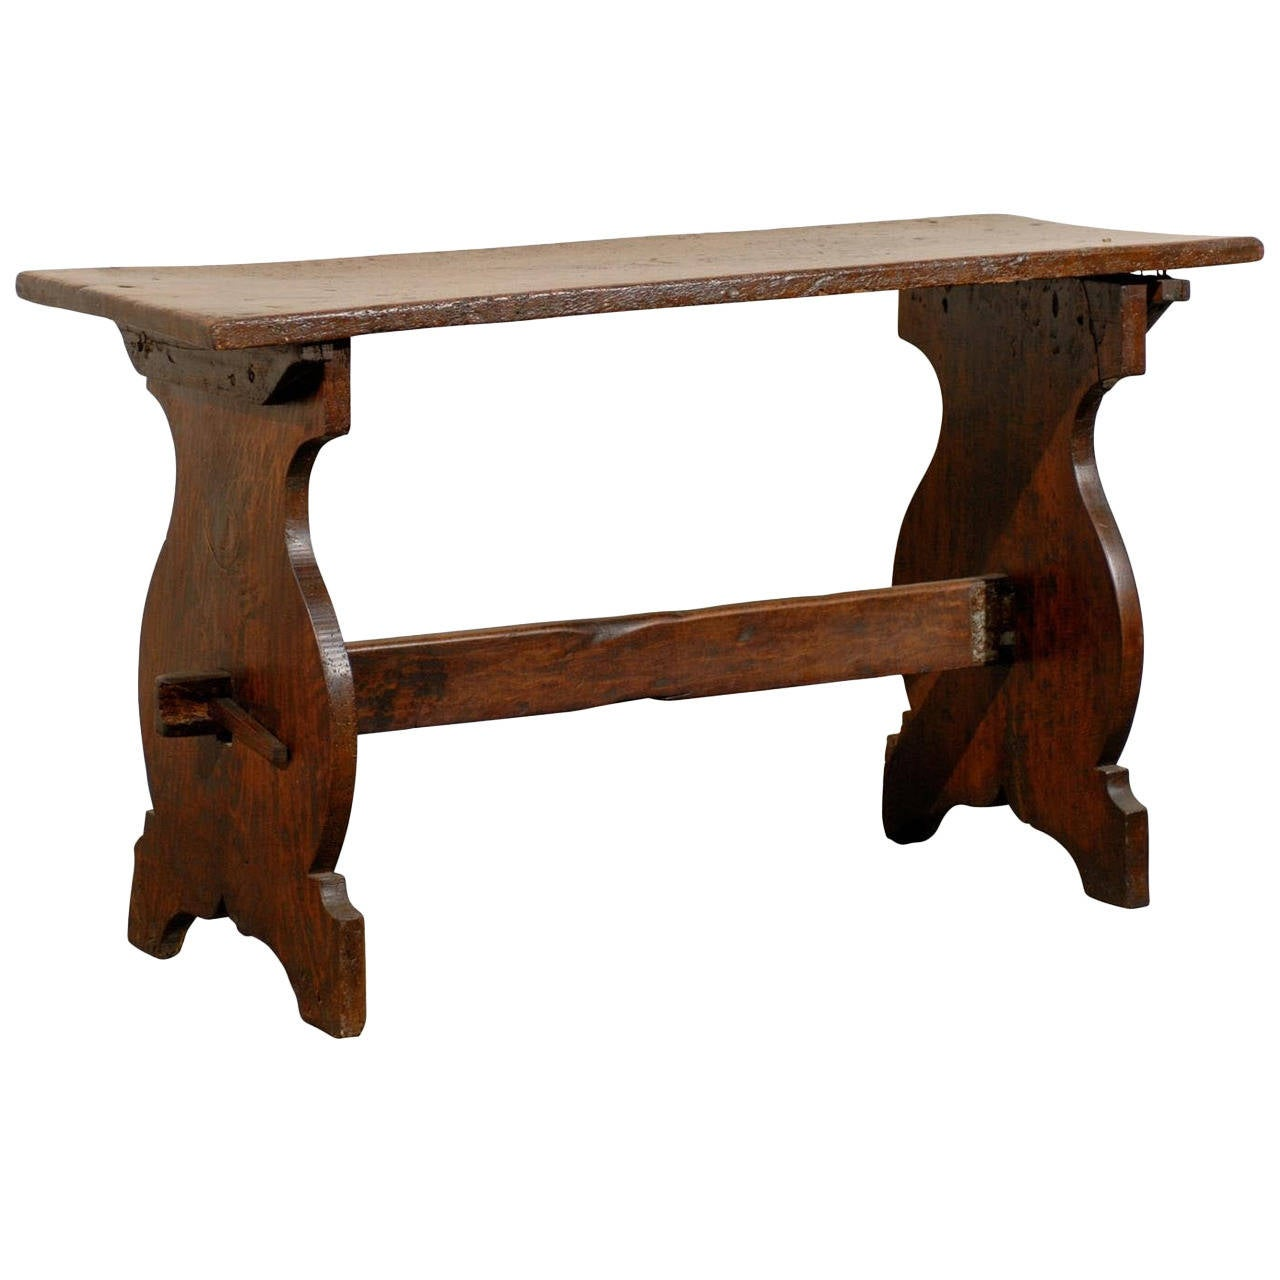 Italian 18th Century Wooden Console Trestle Table For Sale at 1stdibs